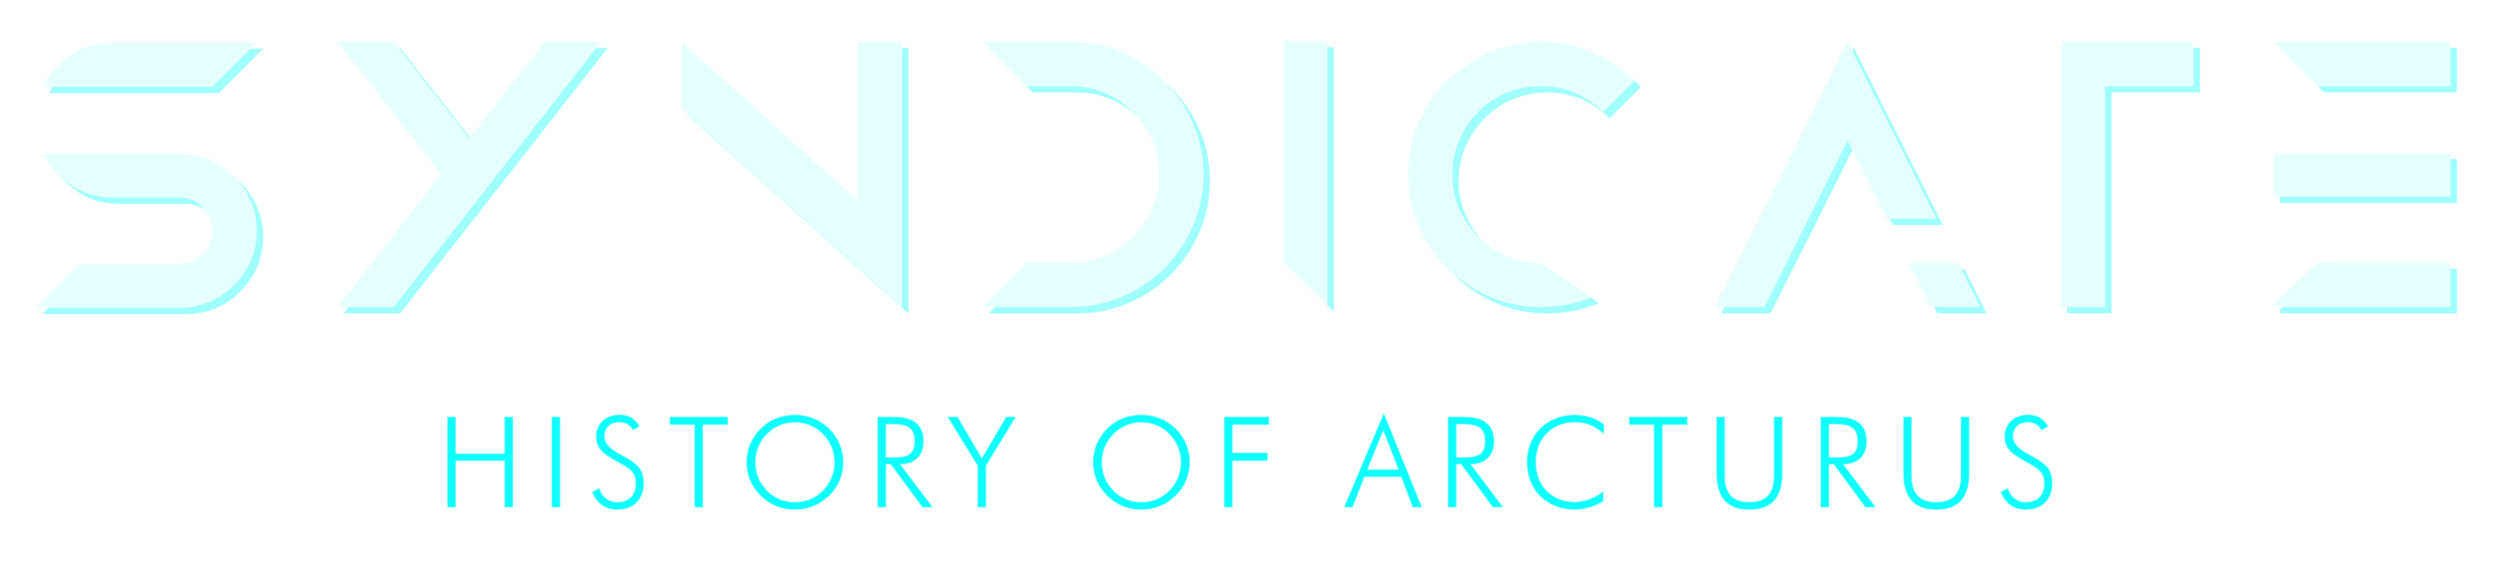 SYNDICATE 2019 Game logo HISTORY OF ARCTURUS